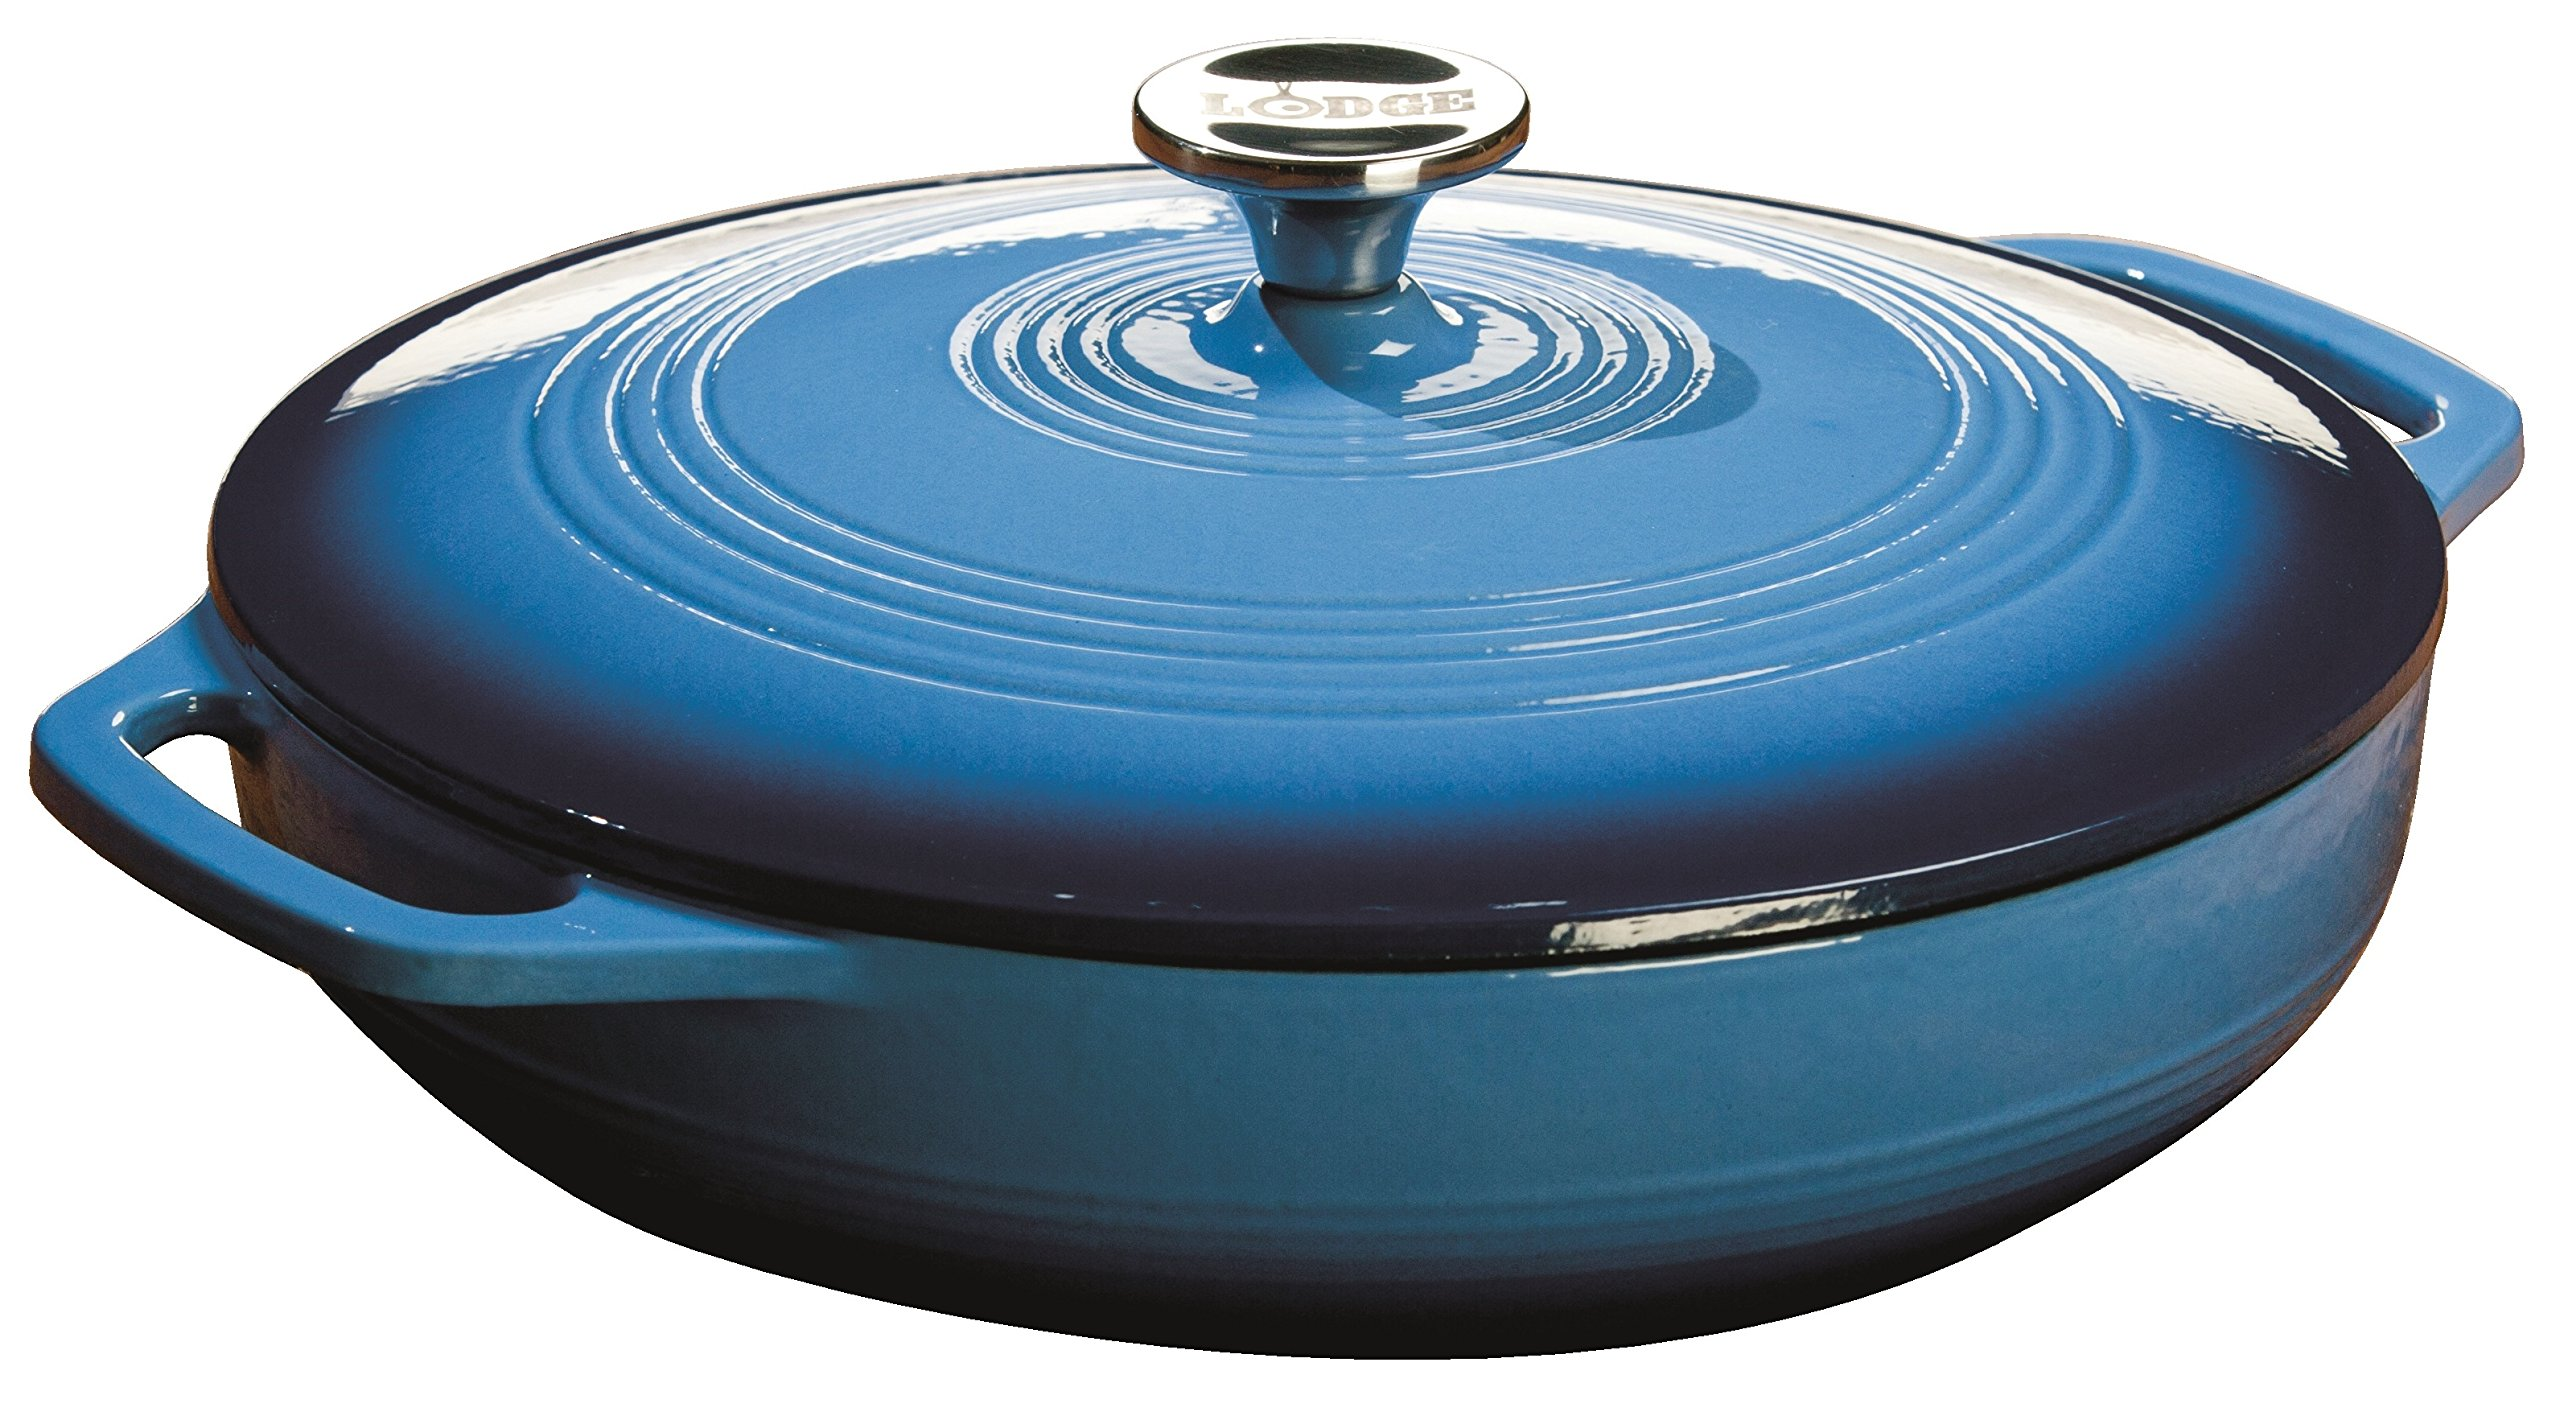 Lodge 3.6 Quart Enamel Cast Iron Casserole Dish with Lid (Carribbean Blue) by Lodge